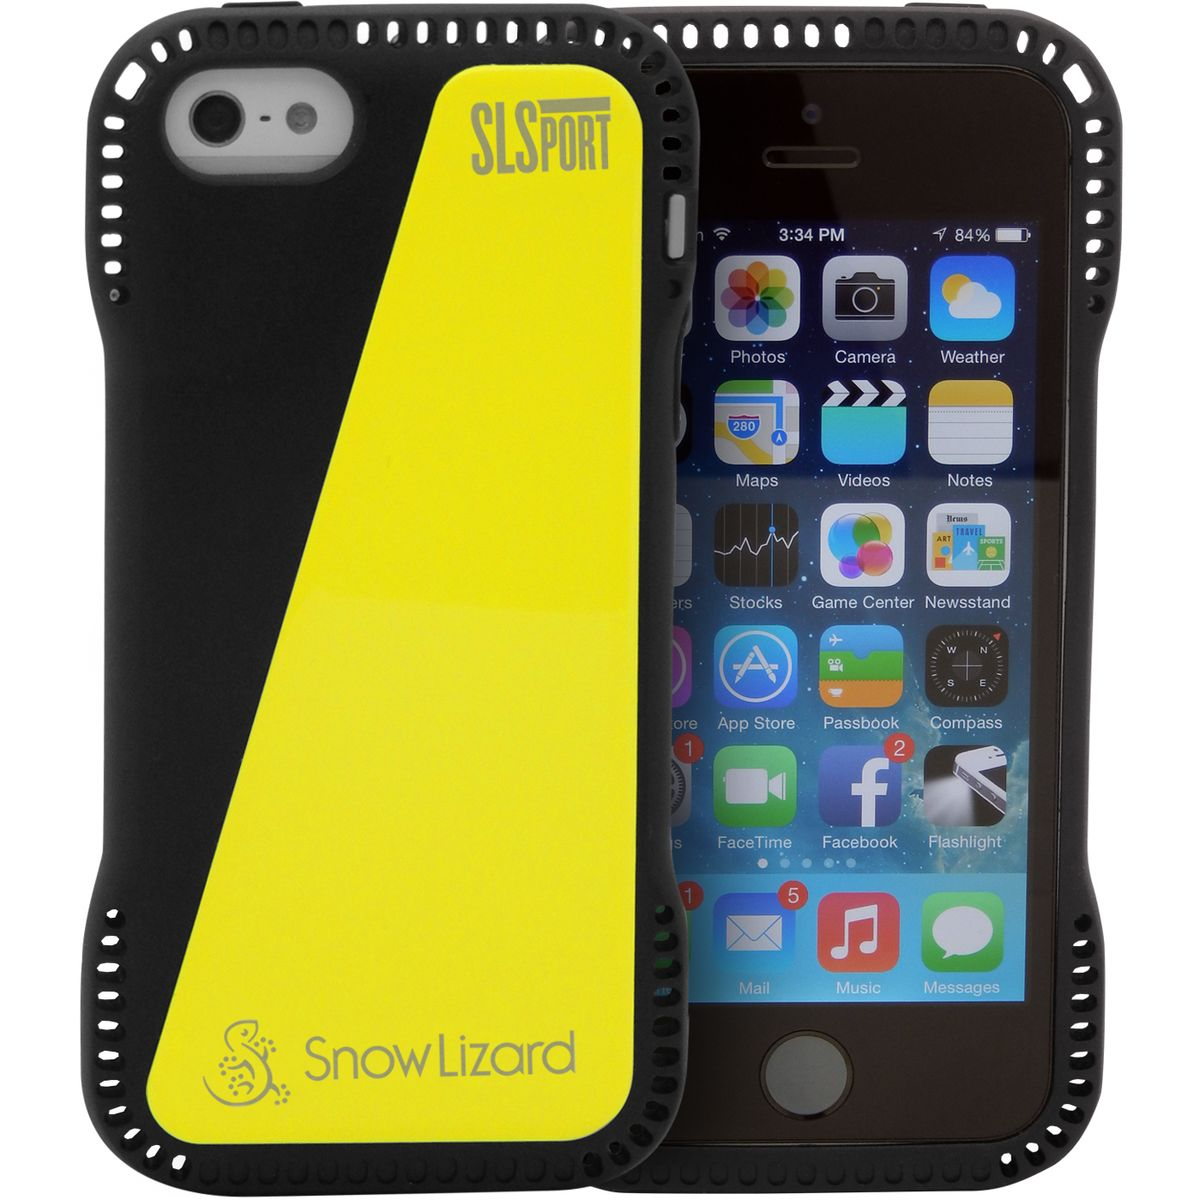 Snow Lizard SLSport iPhone 5 Case Black Yellow One Size